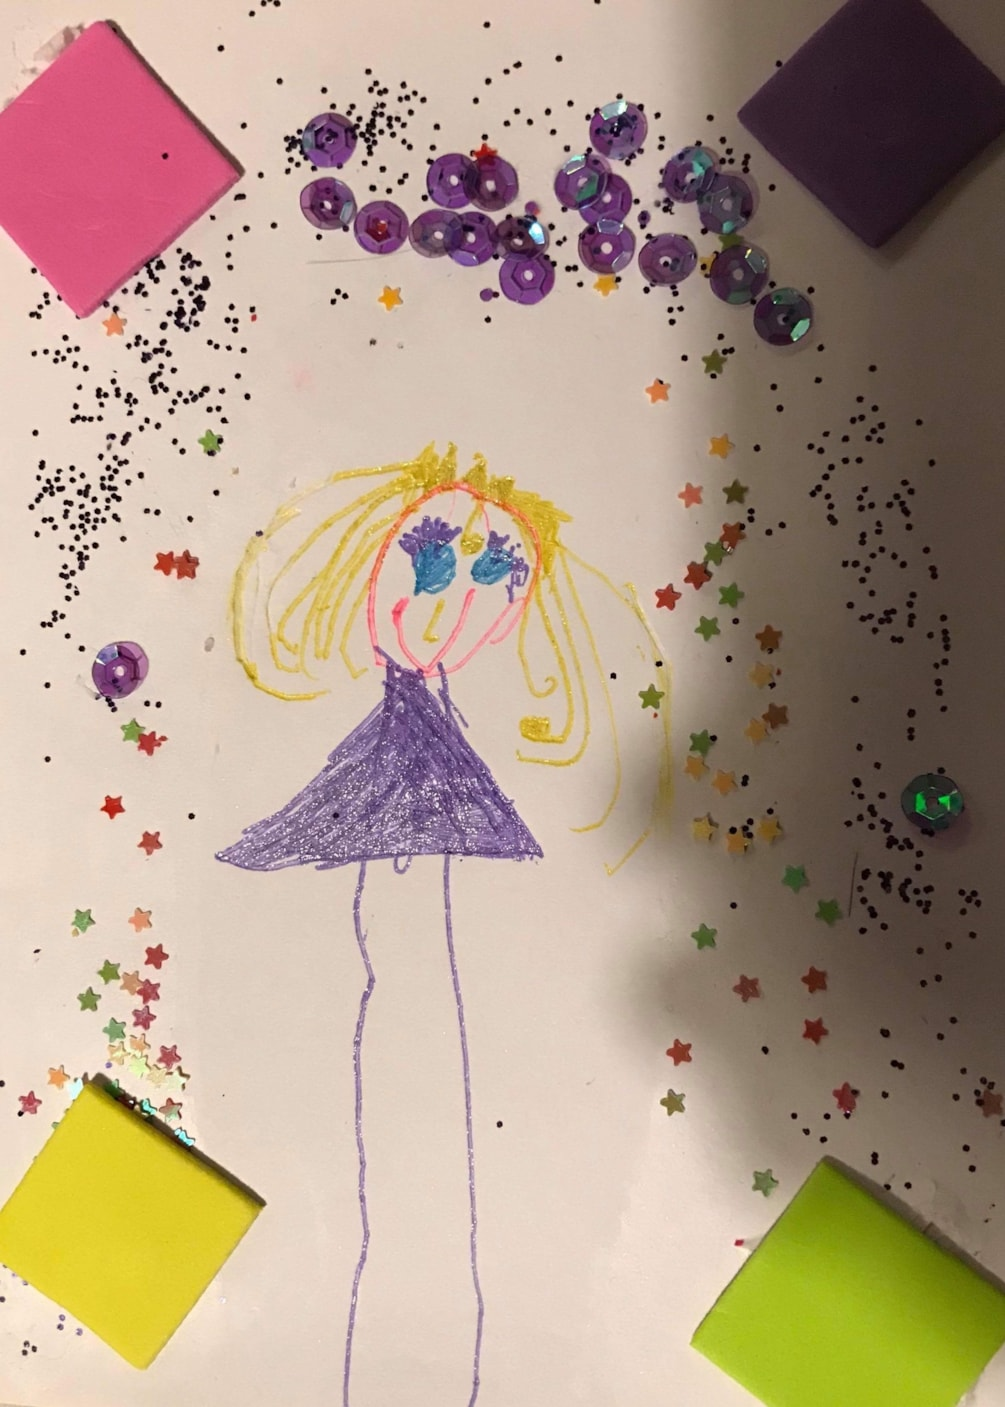 Princess by Imogen age 4